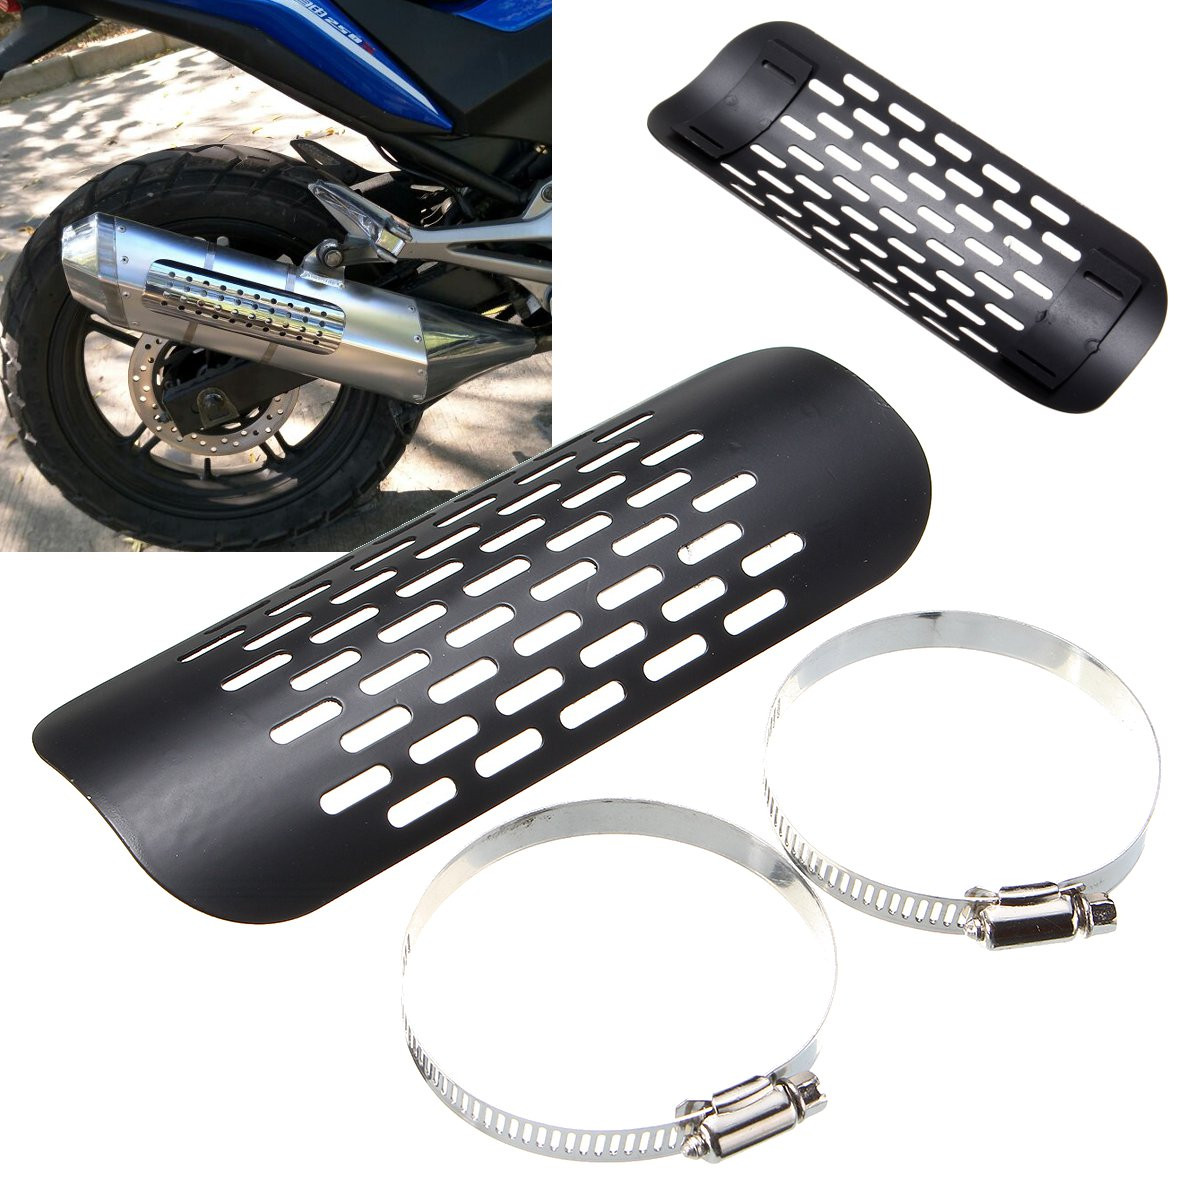 motorcycle exhaust muffler exhaust pipe heat shield cover guard for harley chopper cruiser black